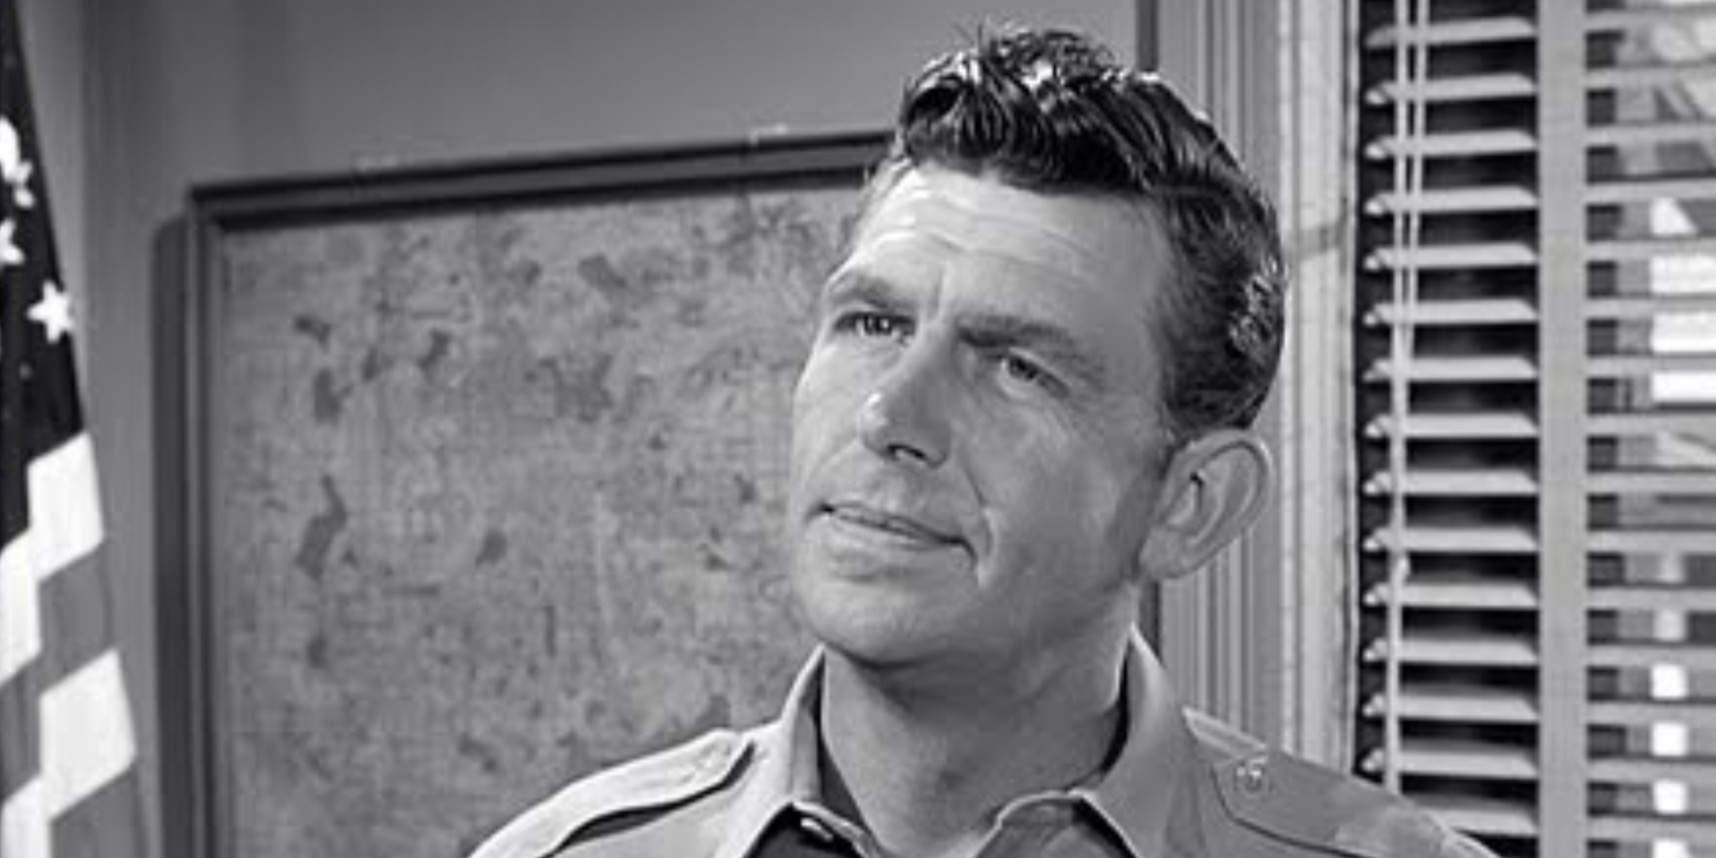 60s tv show main character, tv, The Andy Griffith Show